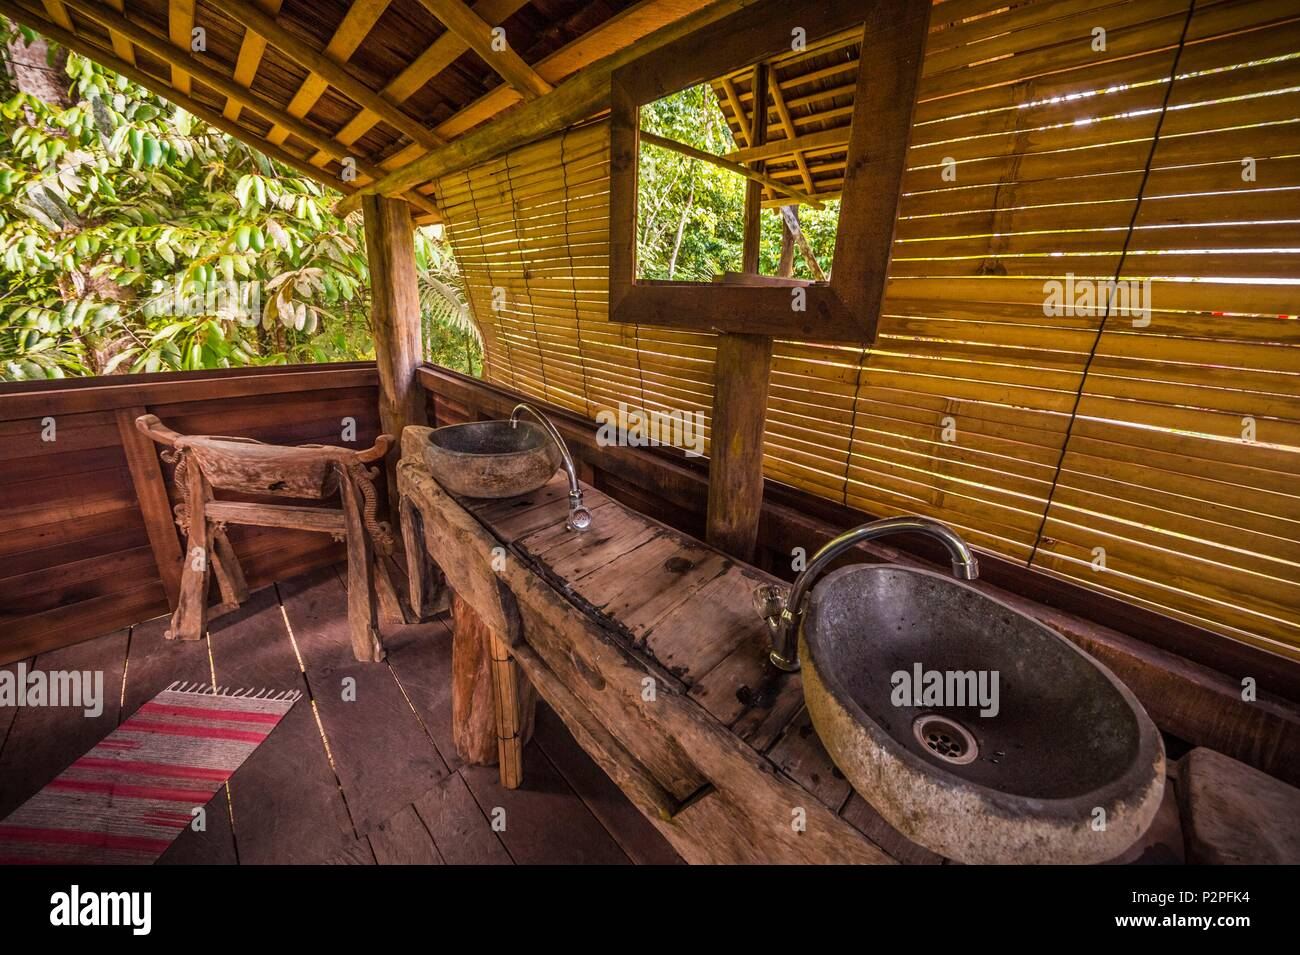 Petite Salle De Bain Style Hammam ~ Wapa Lodge Photos Wapa Lodge Images Alamy